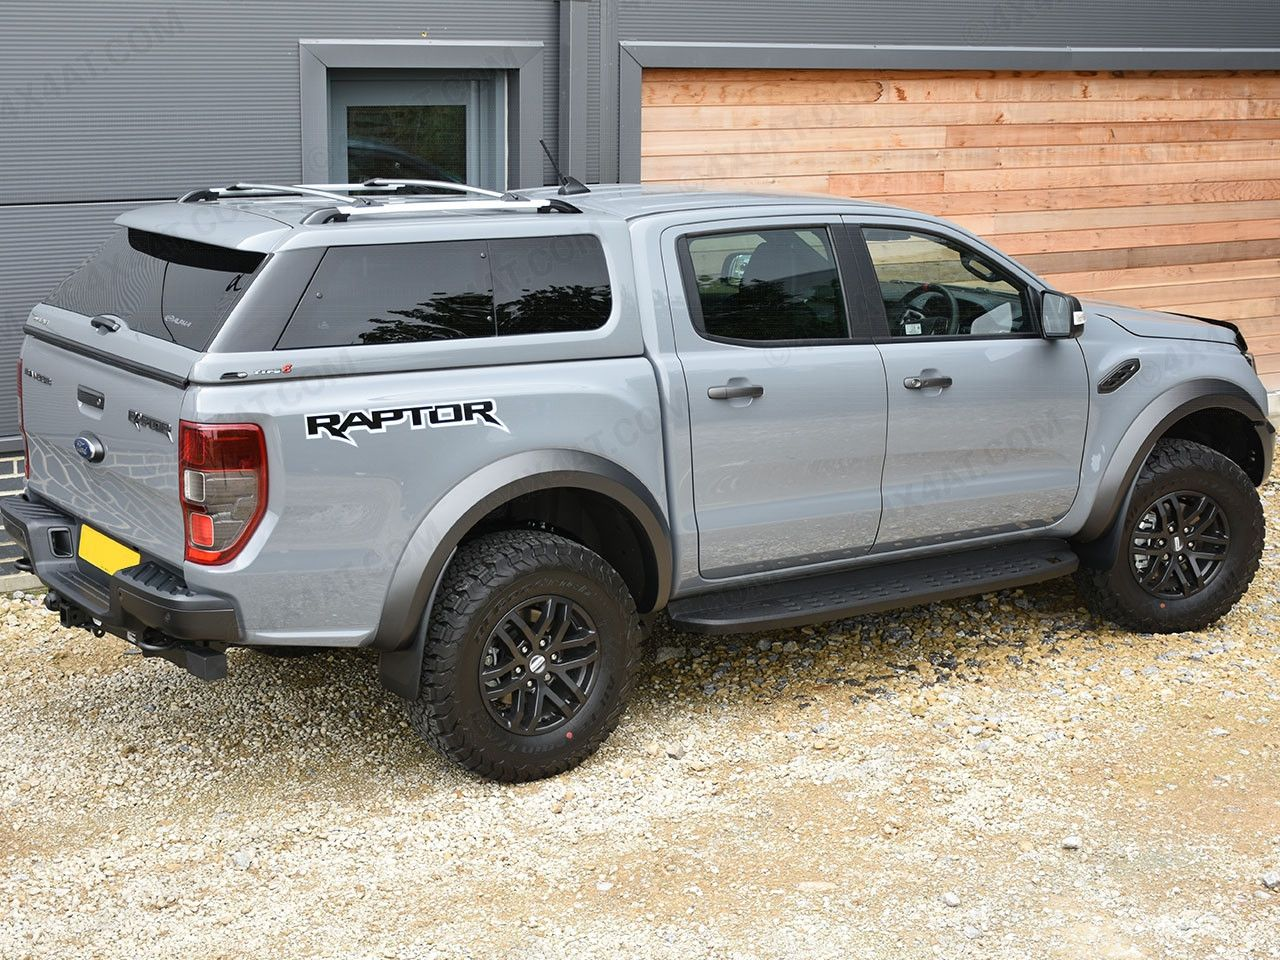 Ford Ranger Raptor 2019 On Alpha Type-E Hardtop In Paintable Primer Finish  in 2020 | Ford ranger raptor, Ford ranger, Ford raptor interior